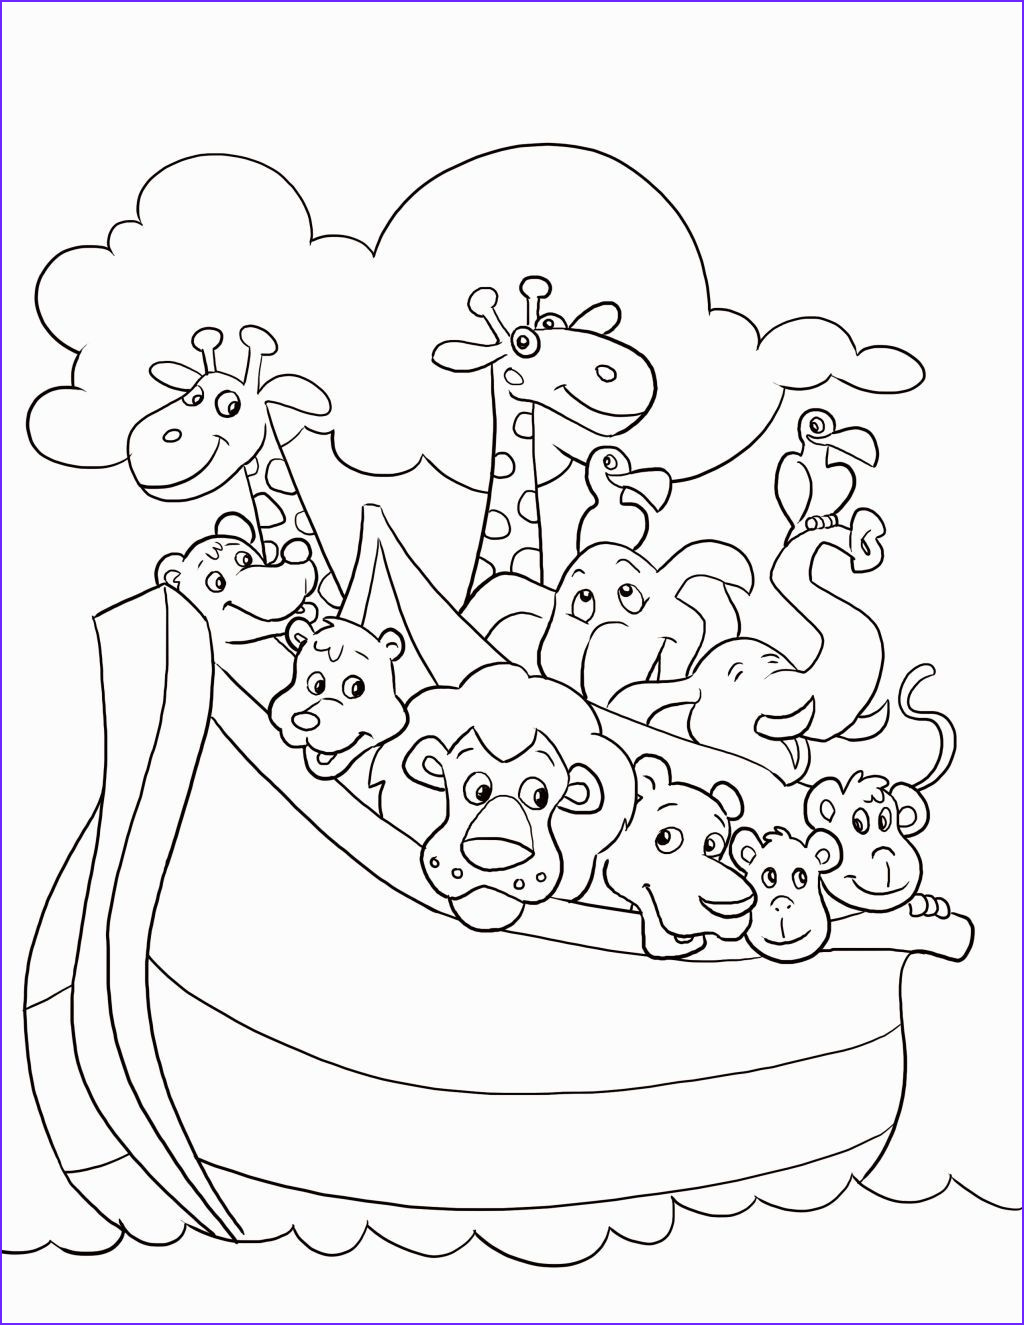 Christian Coloring Pages for toddlers Inspirational Stock Christian Coloring Pages for Preschoolers